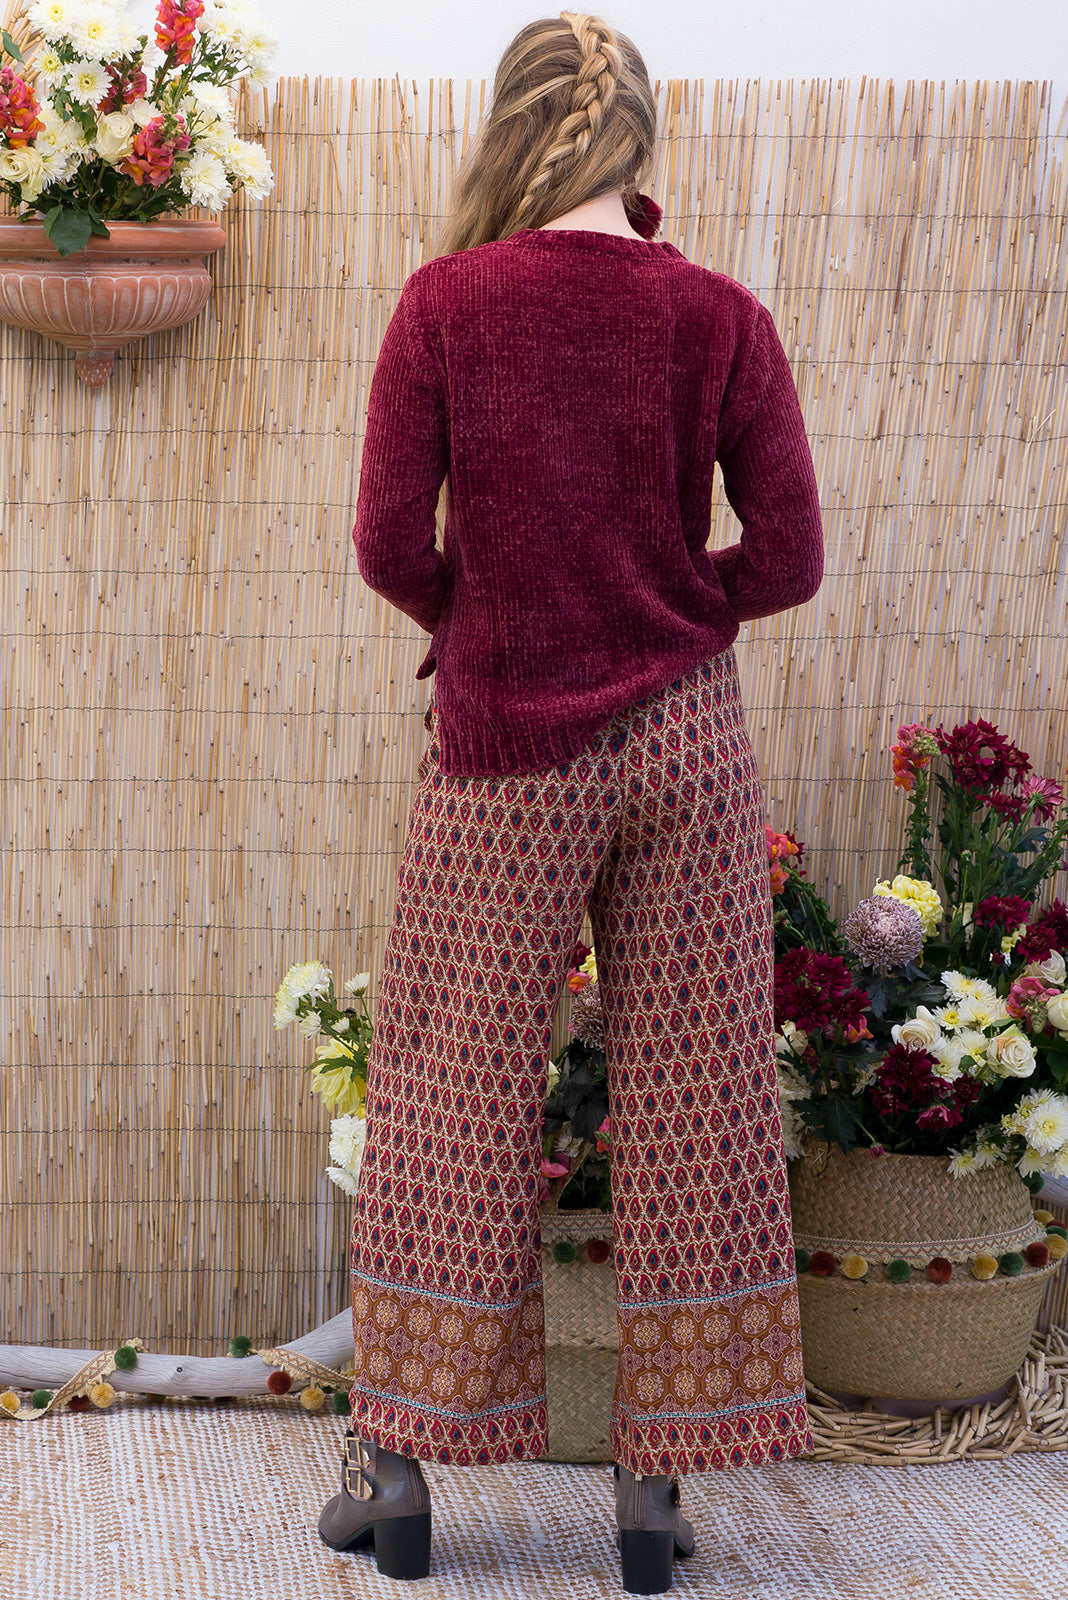 Jumper Love Shack in brick red with a velvet feel open weave cropped jumper for boho inspired winter outfits